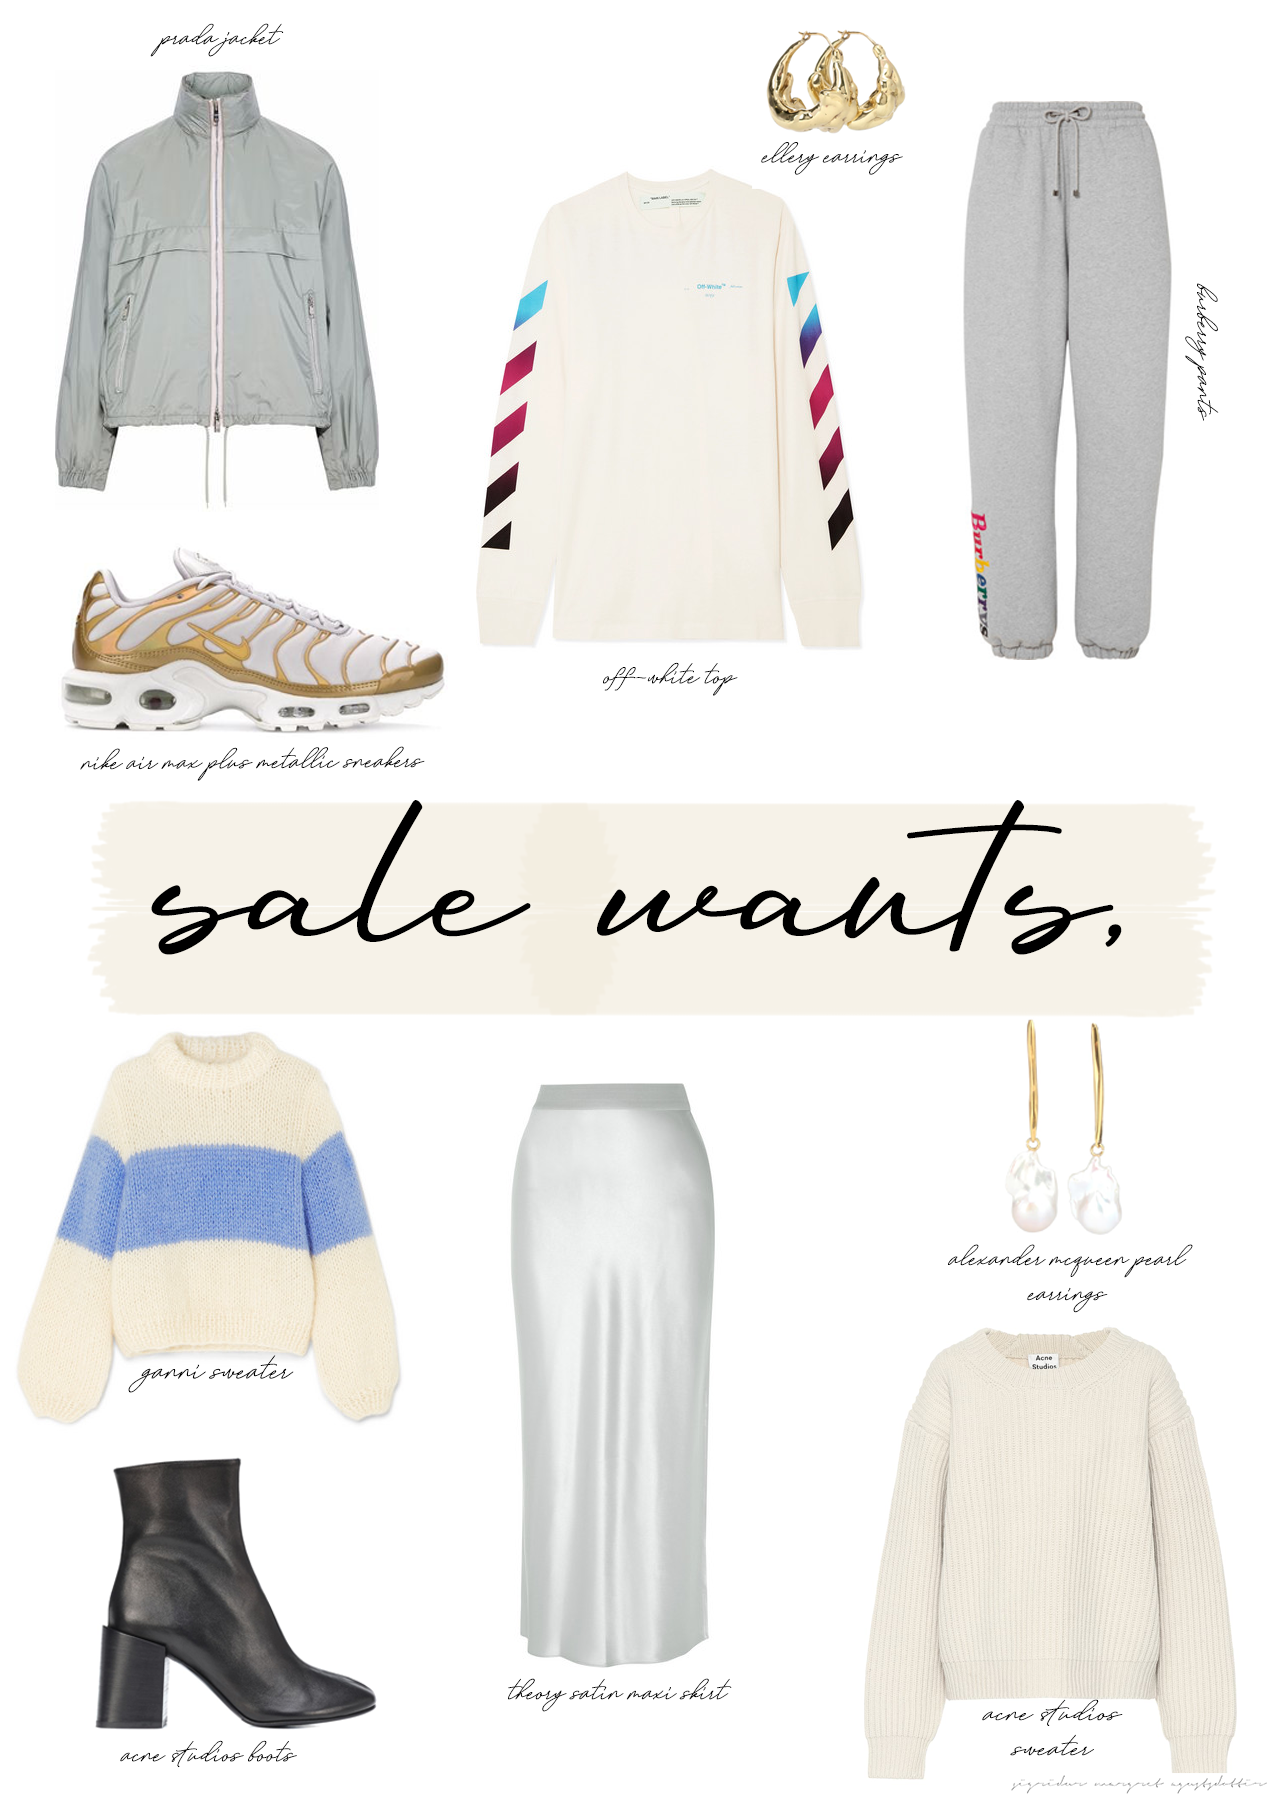 JANUARY SALE WANTS: